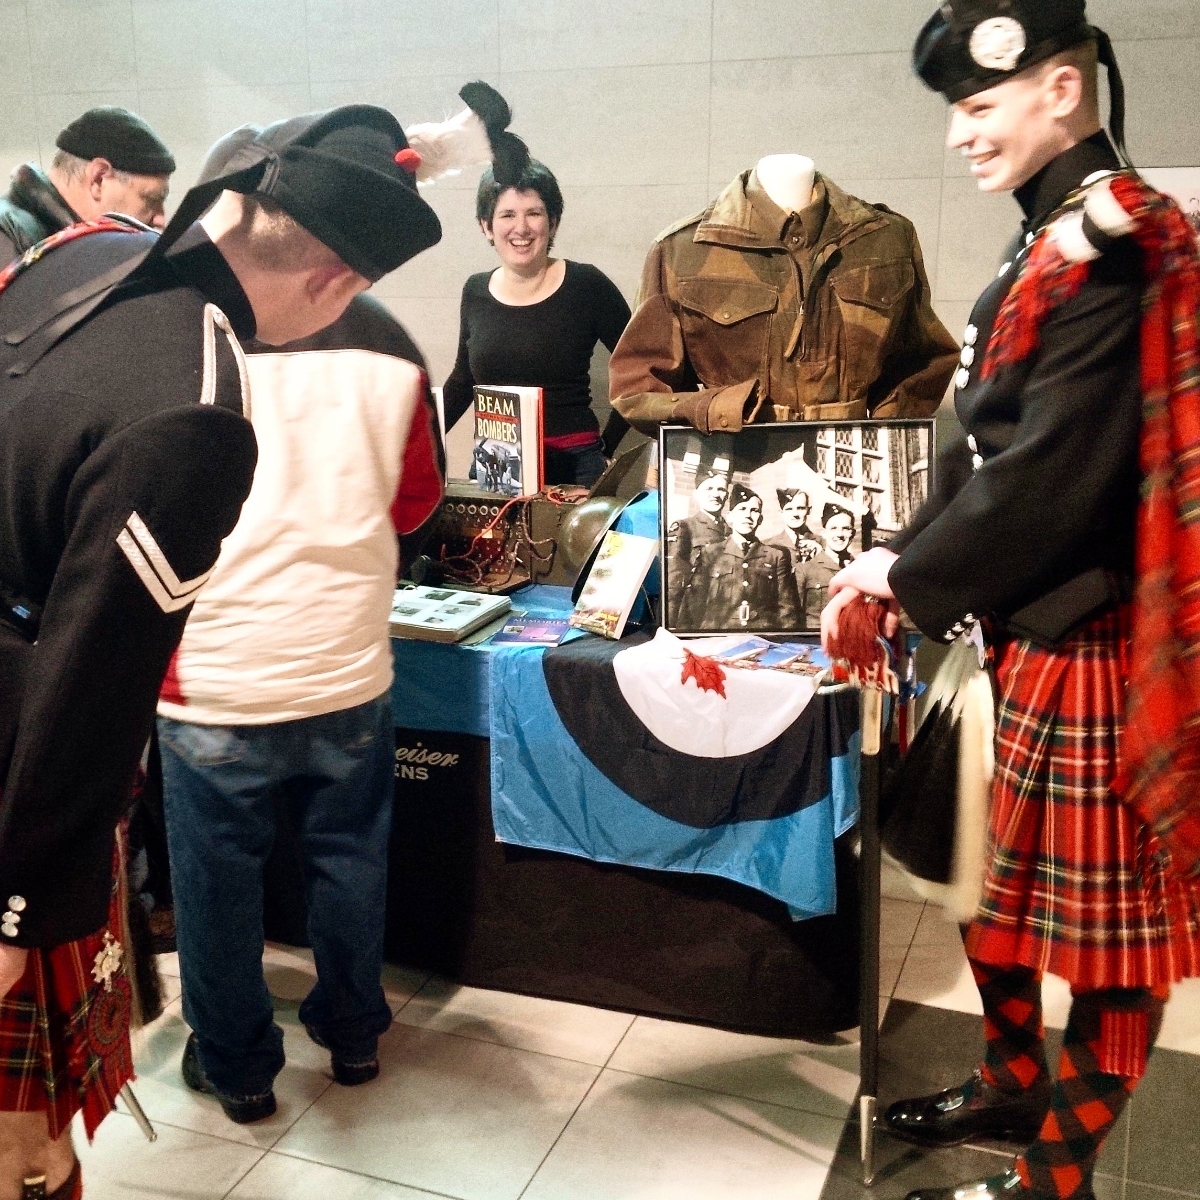 Two Highland dancers of the 1st Batalion Scots Guard visit the display.